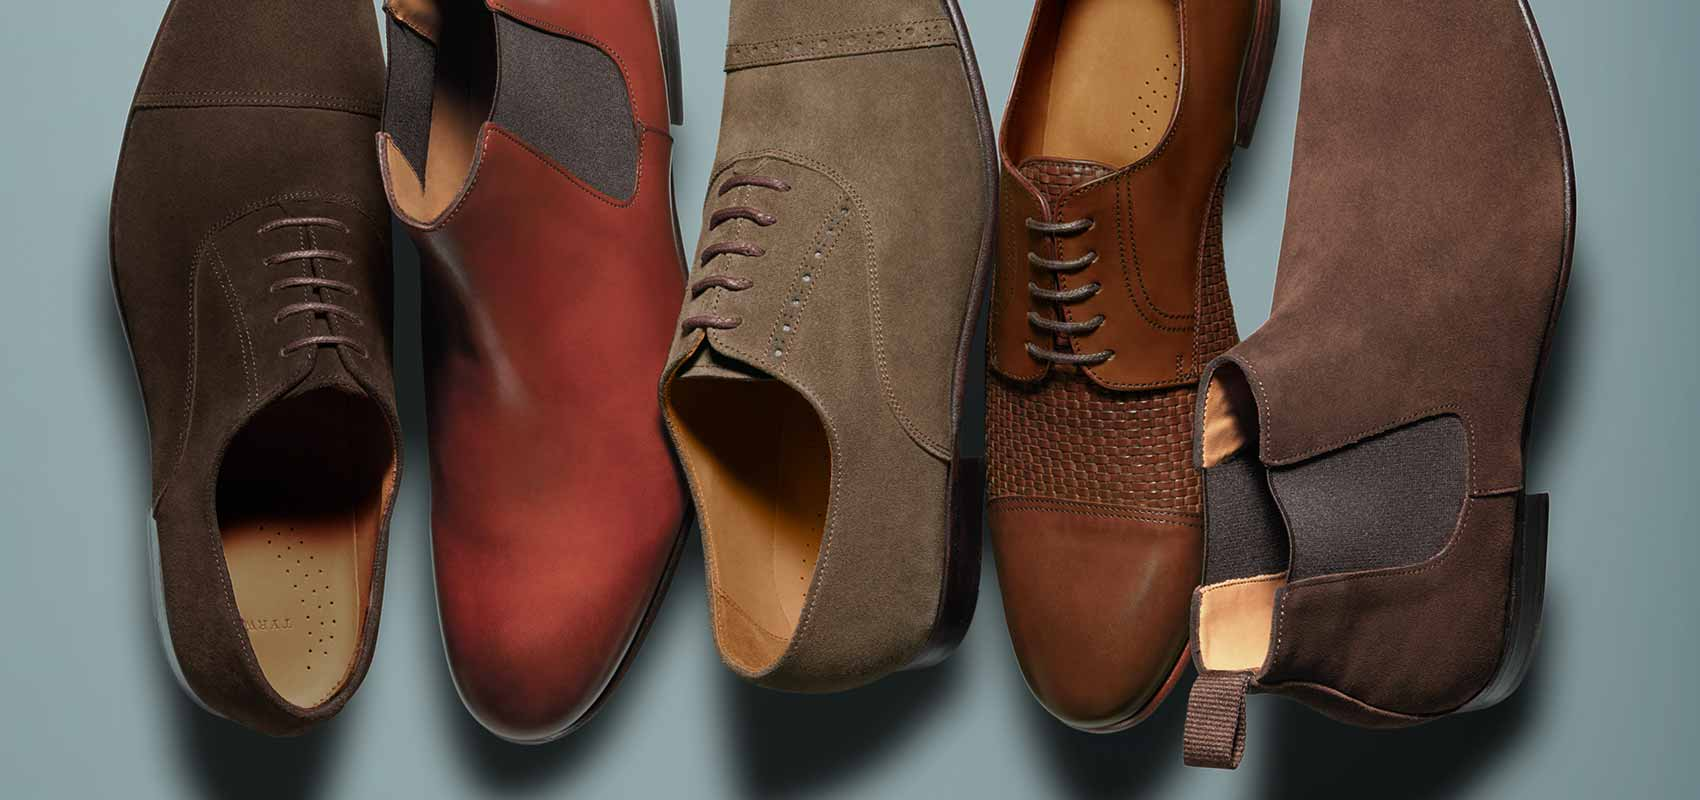 Charles Tyrwhitt business-casual shoes